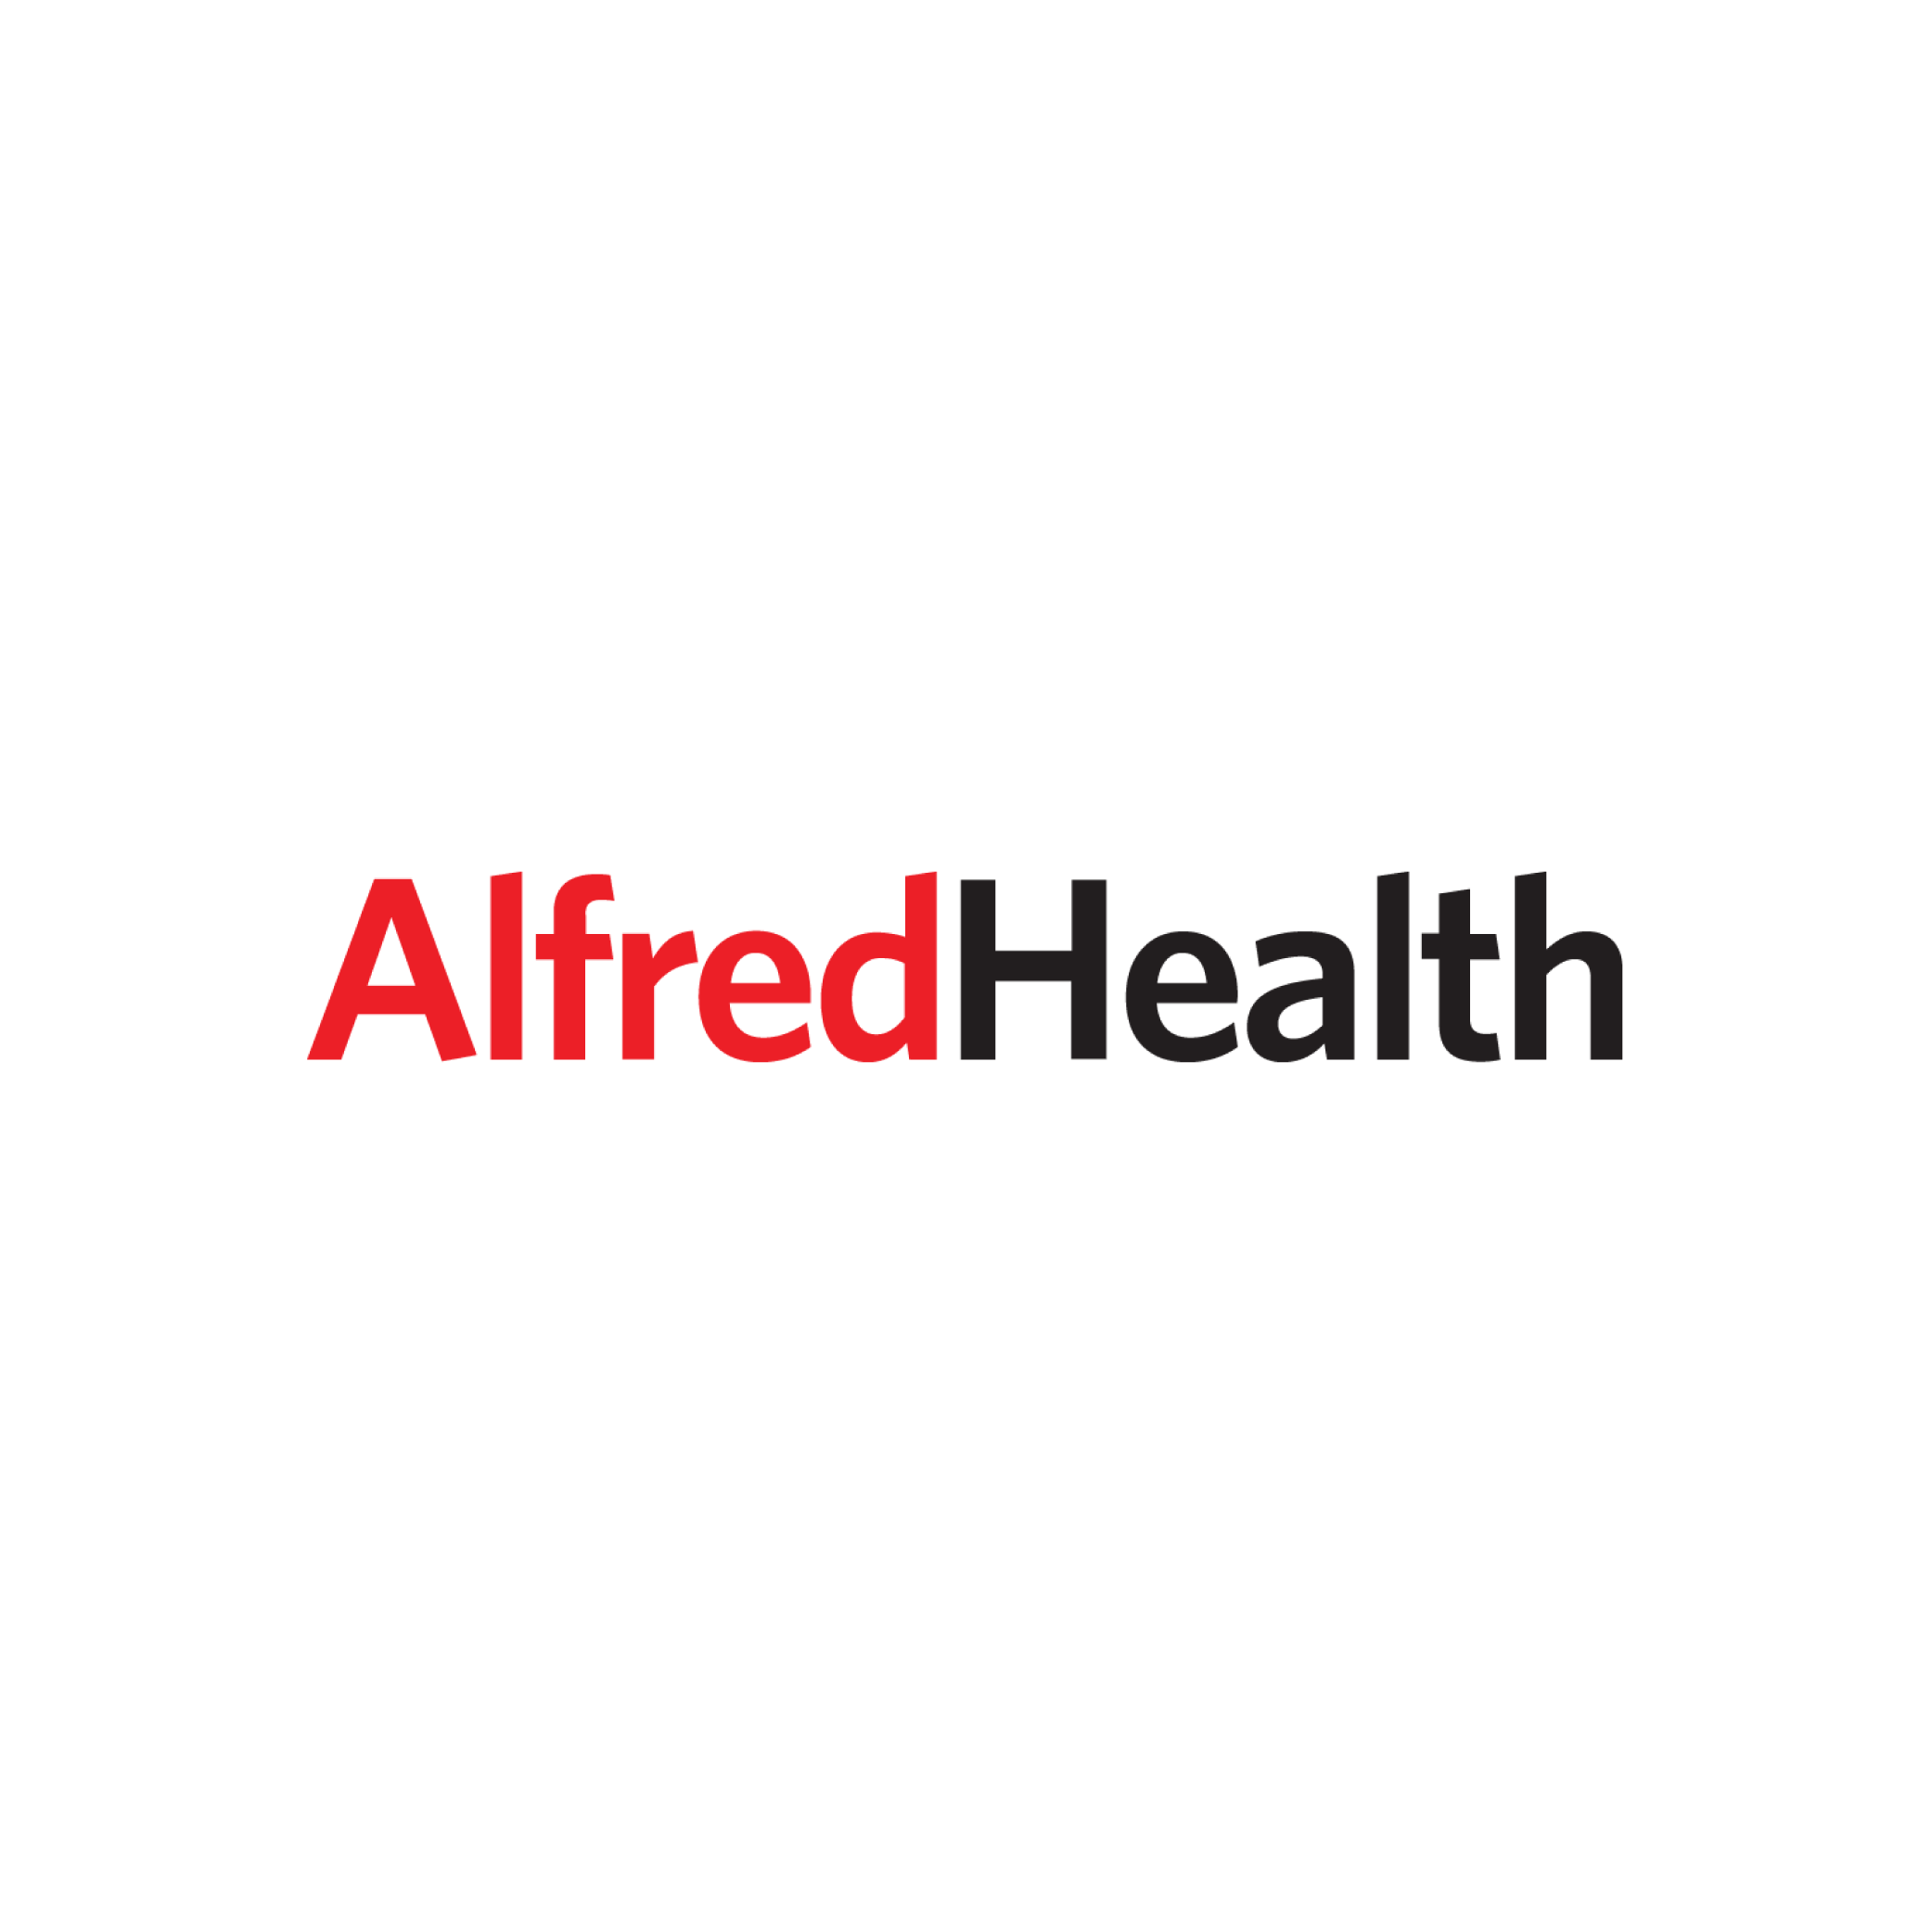 Alfred Health-01.png